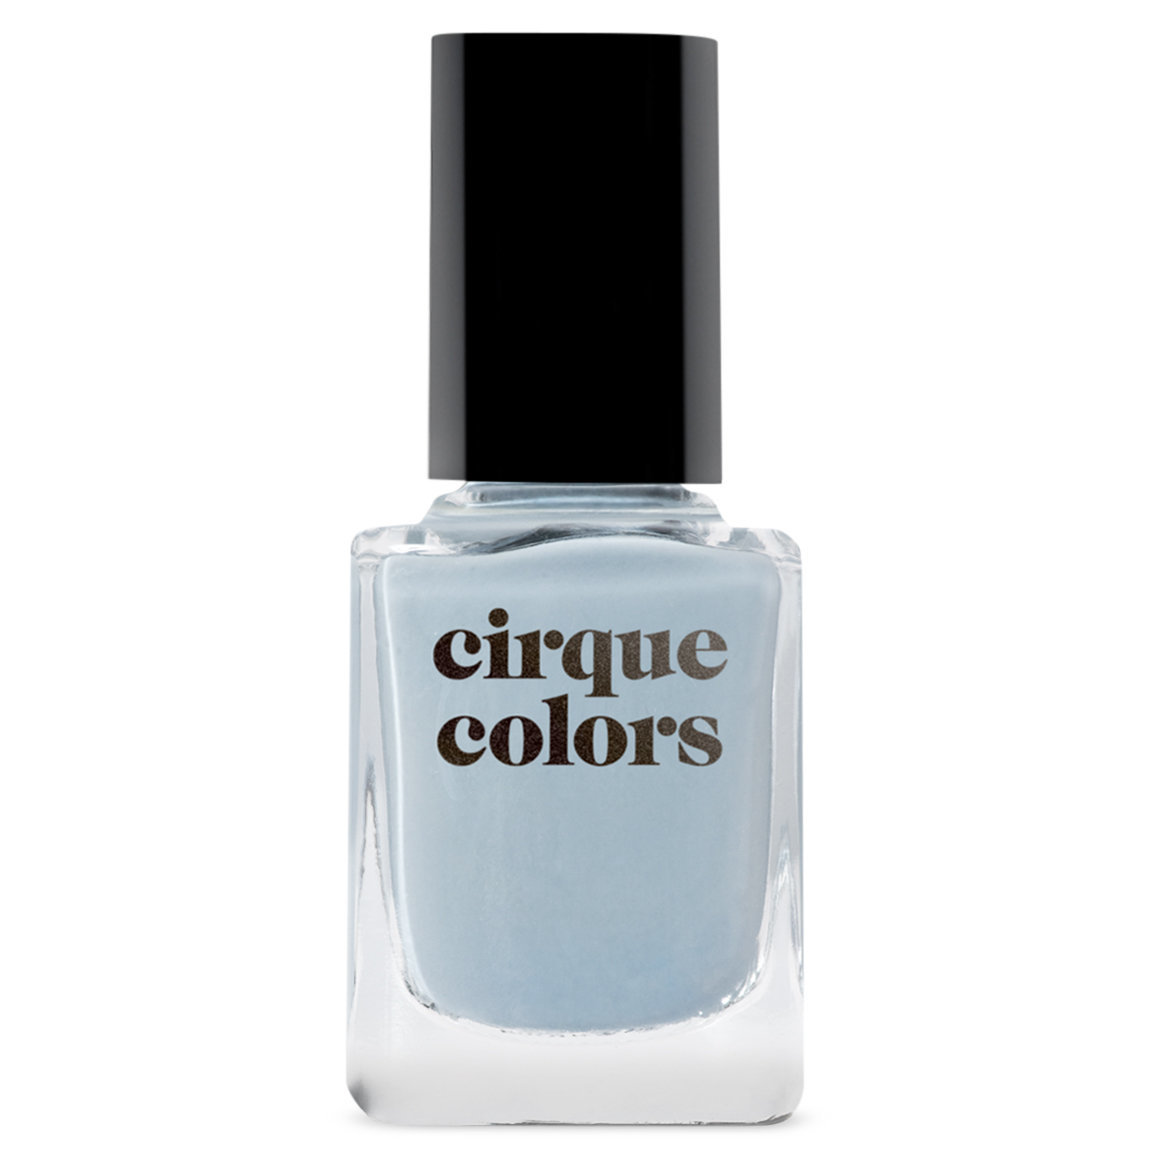 Cirque Colors Creme Nail Polish Storm King alternative view 1 - product swatch.